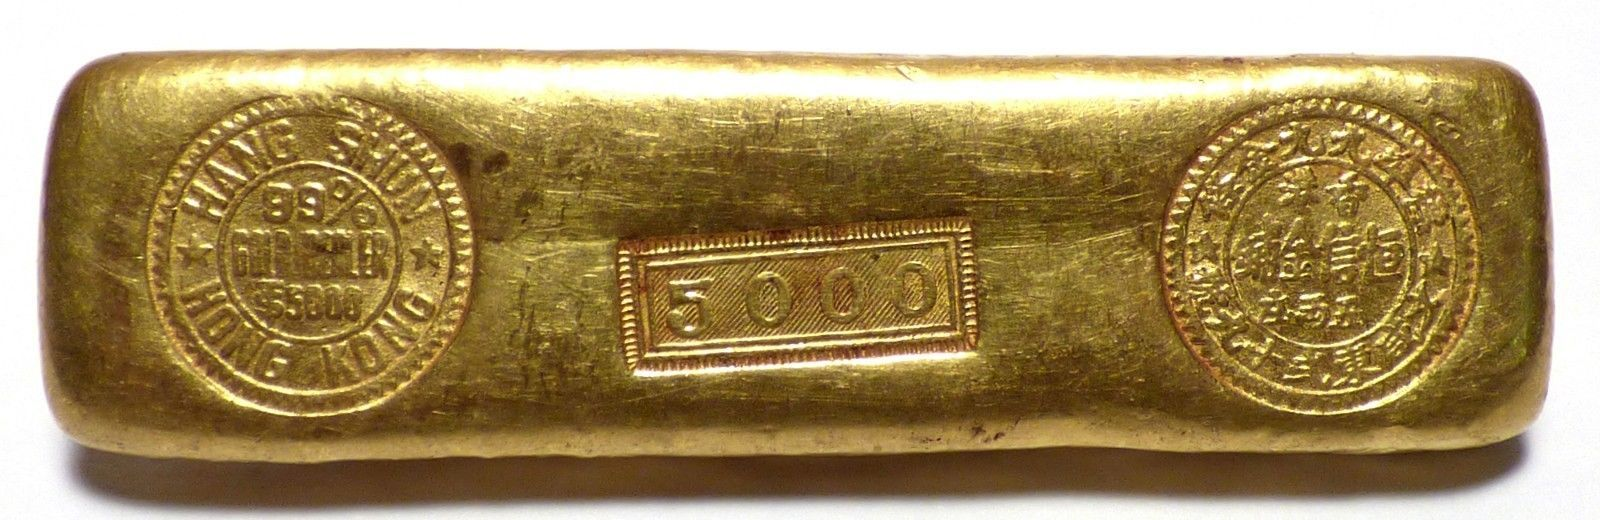 Hong Kong Hang Shun Gold Dealer 5 Tael 6 01 Oz 9999 Fine Gold Bar Rare